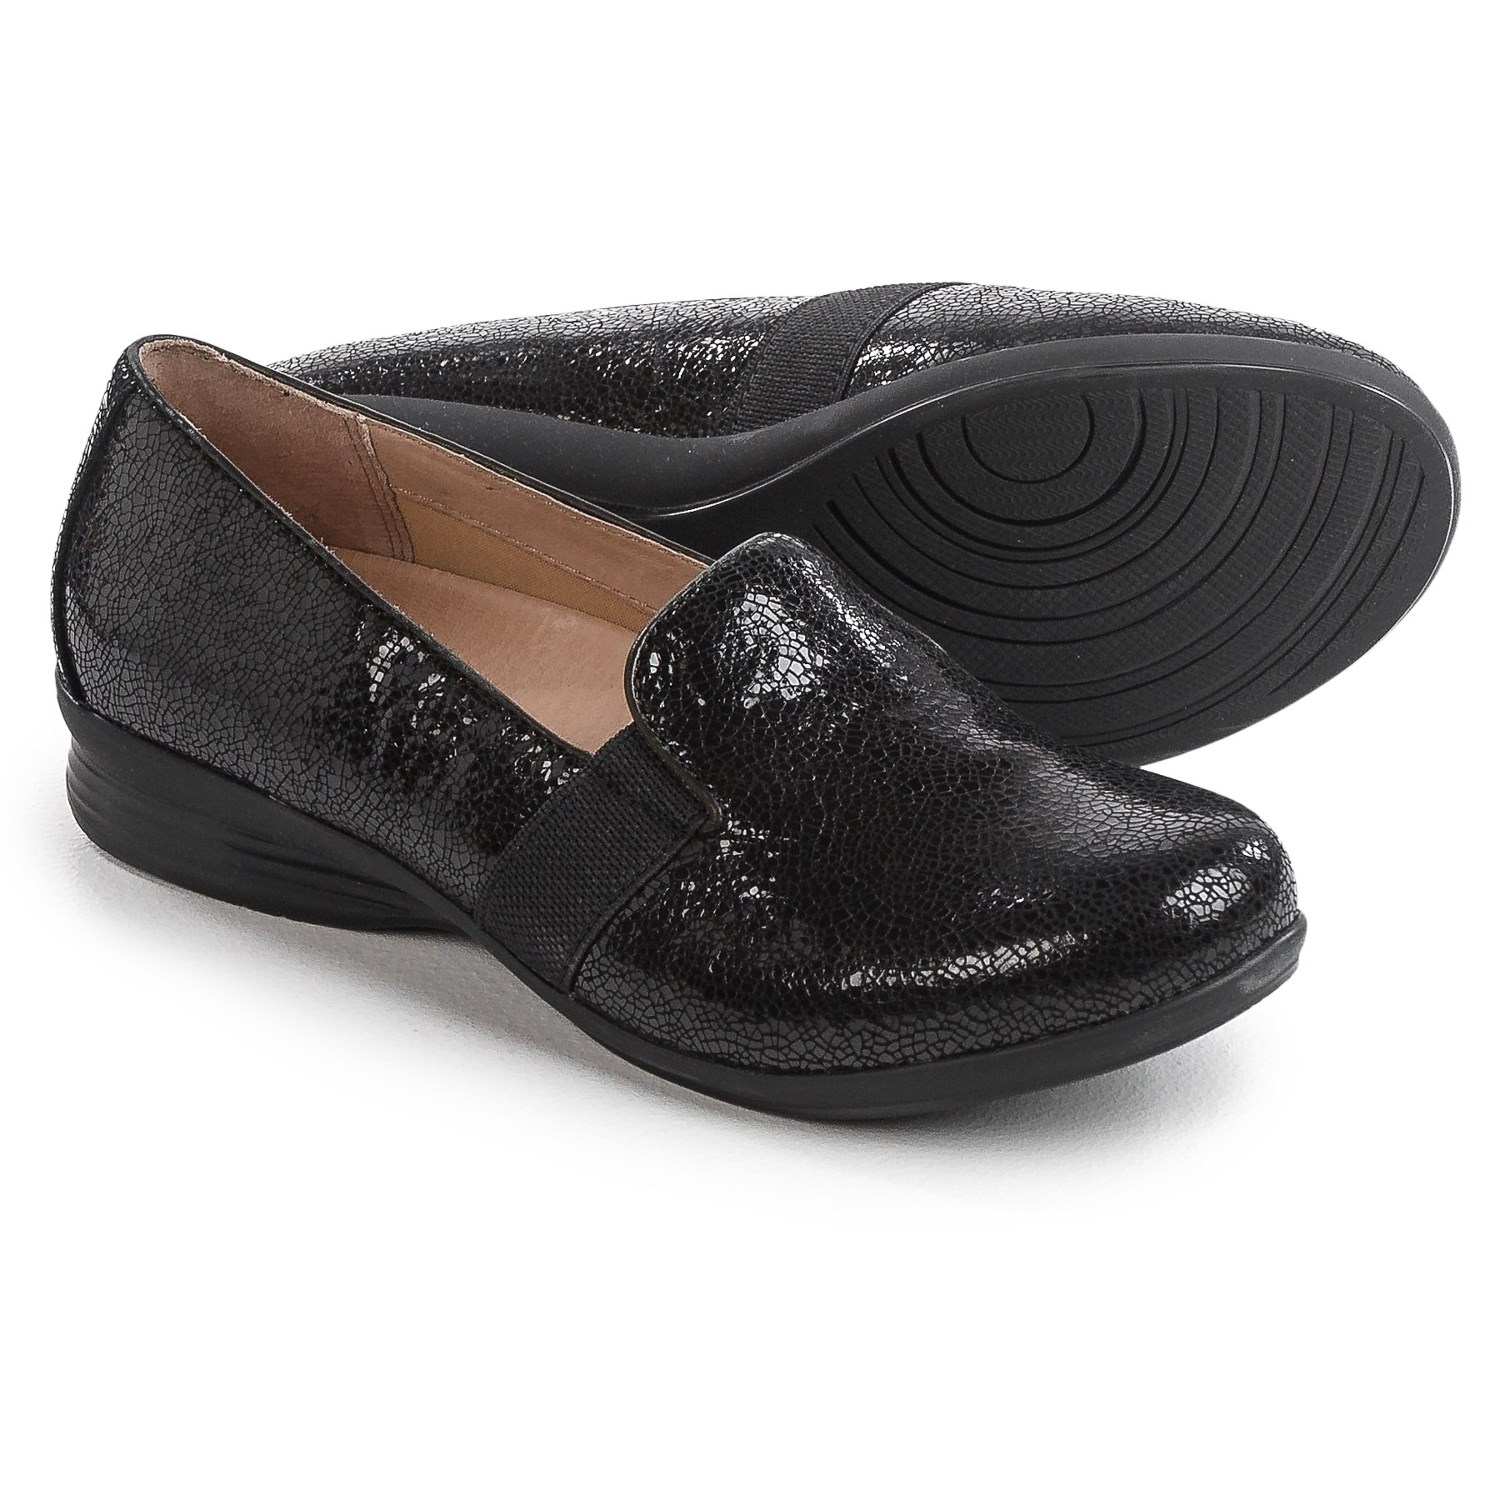 Permalink to Dansko Womens Shoes